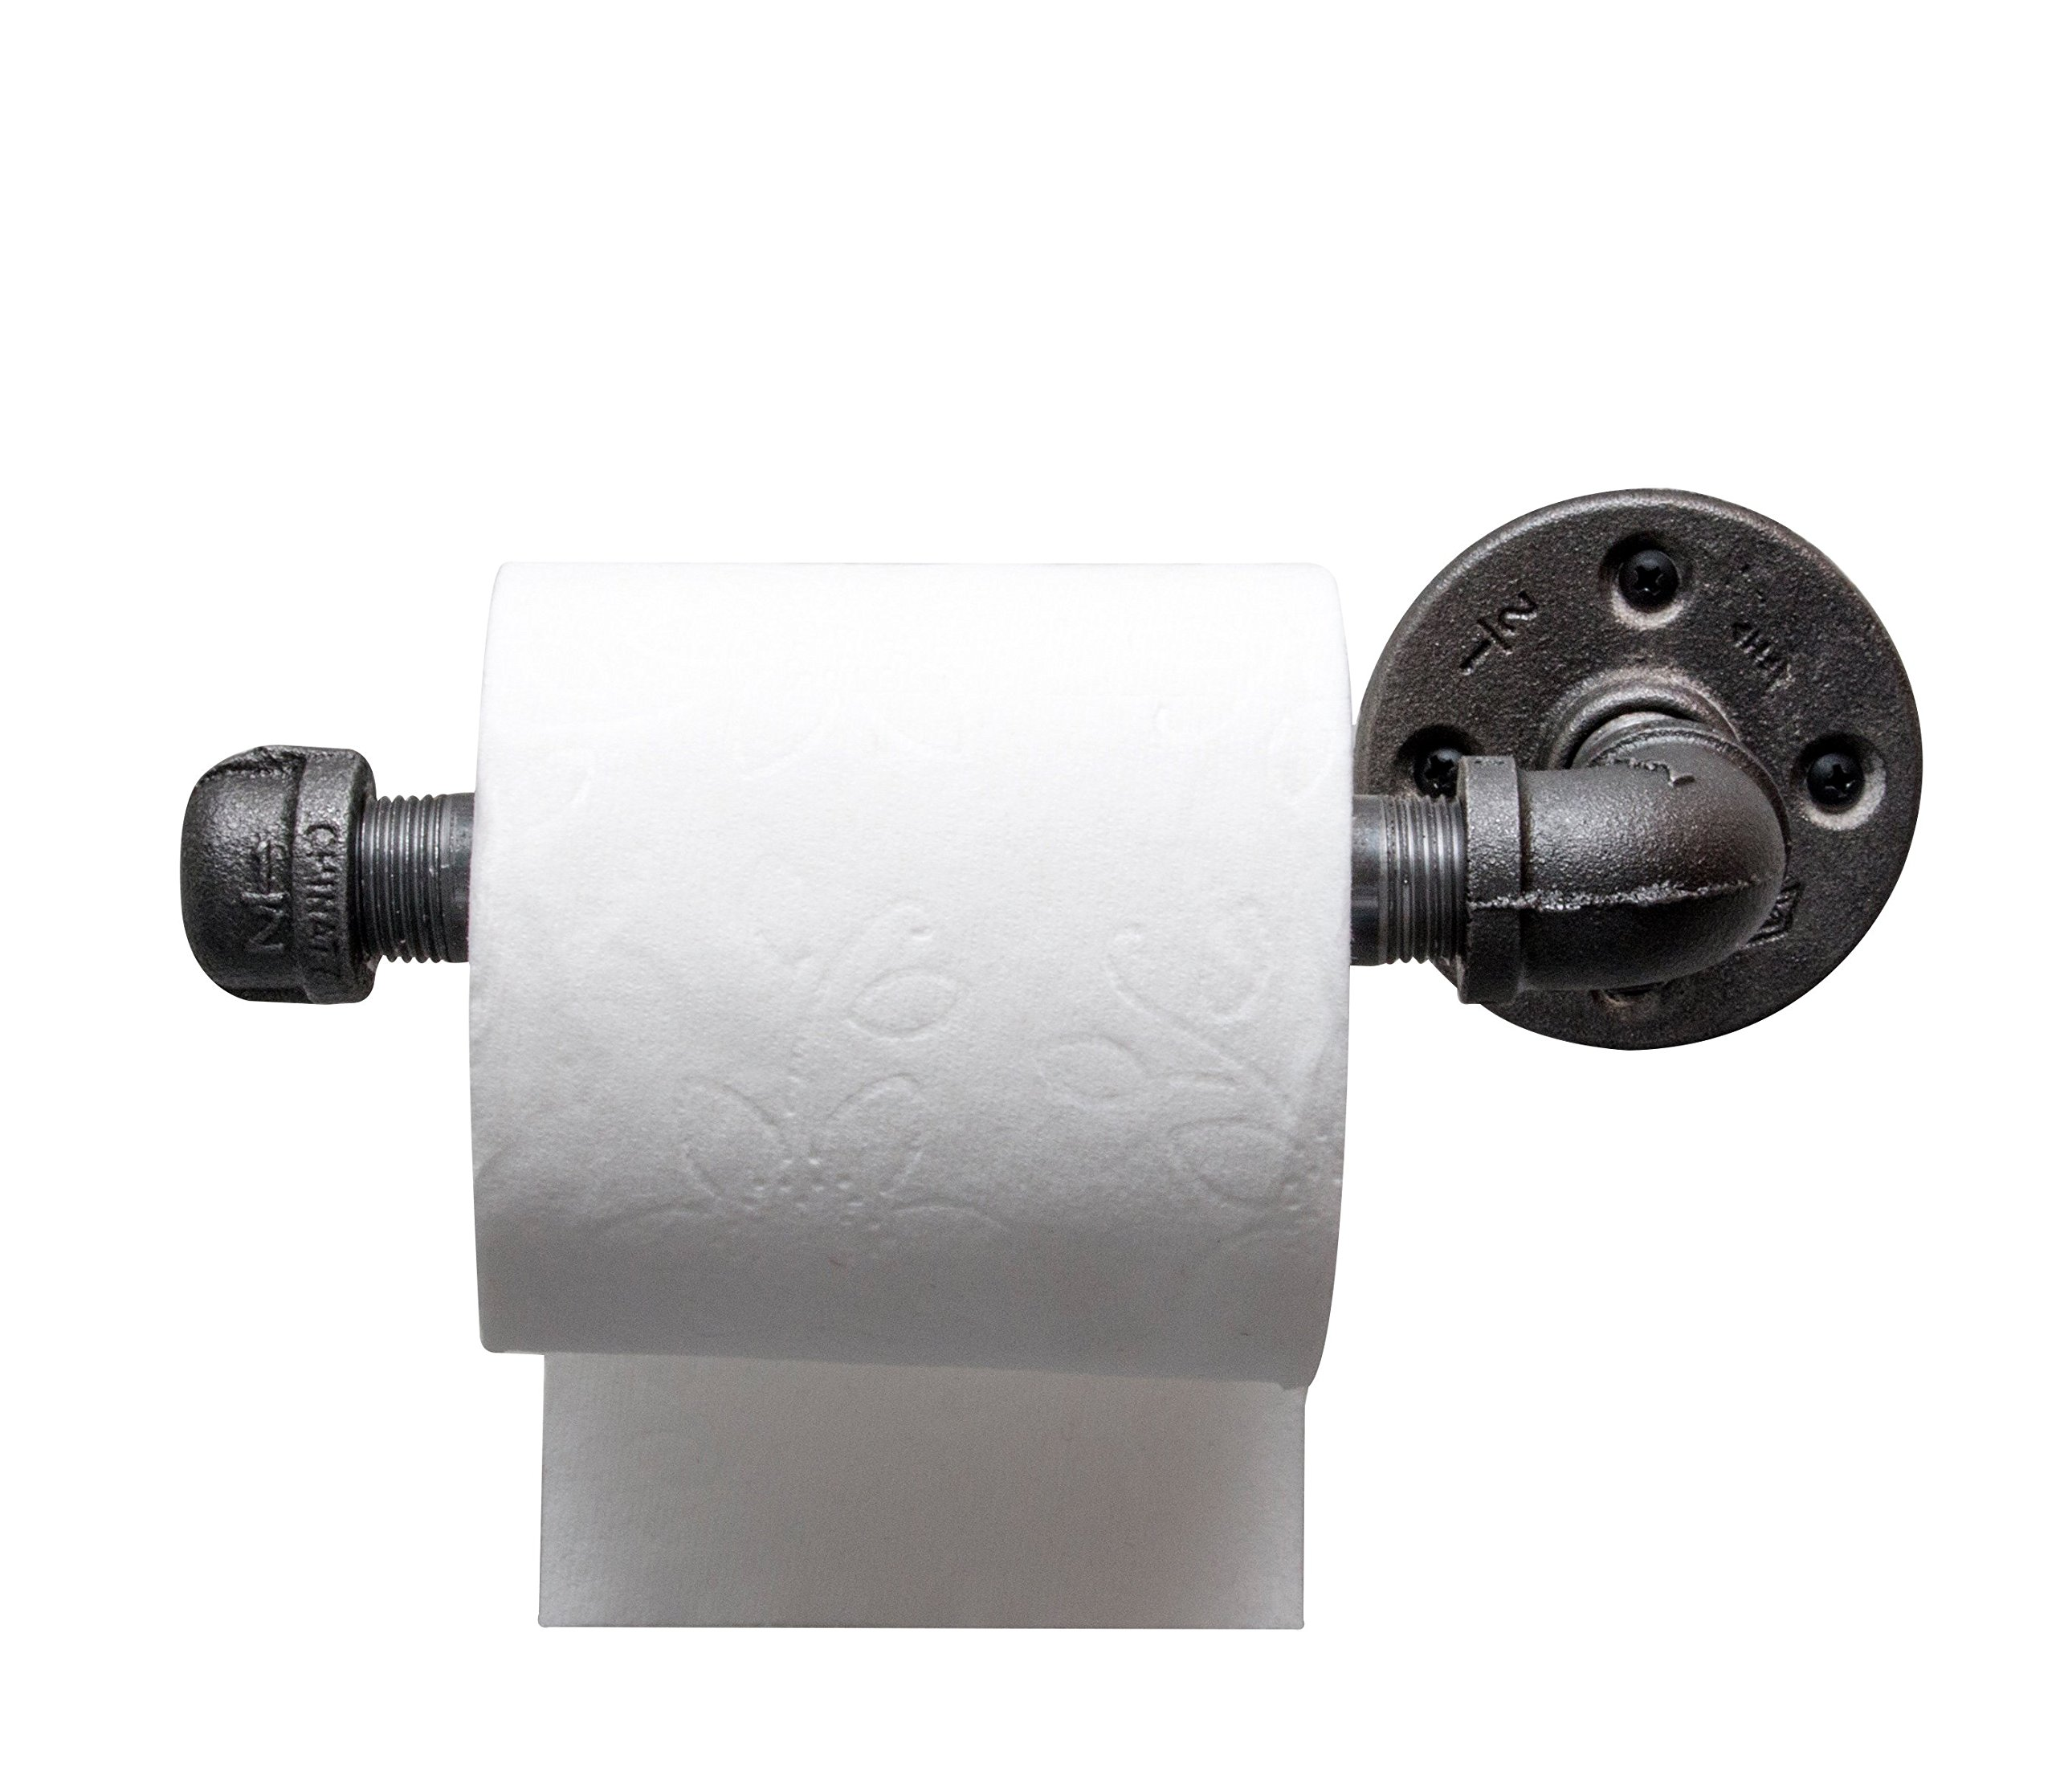 DIY CARTEL Industrial Pipe Toilet Paper Tissue Holder - Black Iron - Commercial/Heavy Duty - Style : Modern, Minimalist, Rustic, Steampunk, Farmhouse, and Industrial Furniture (1 roll Holder)